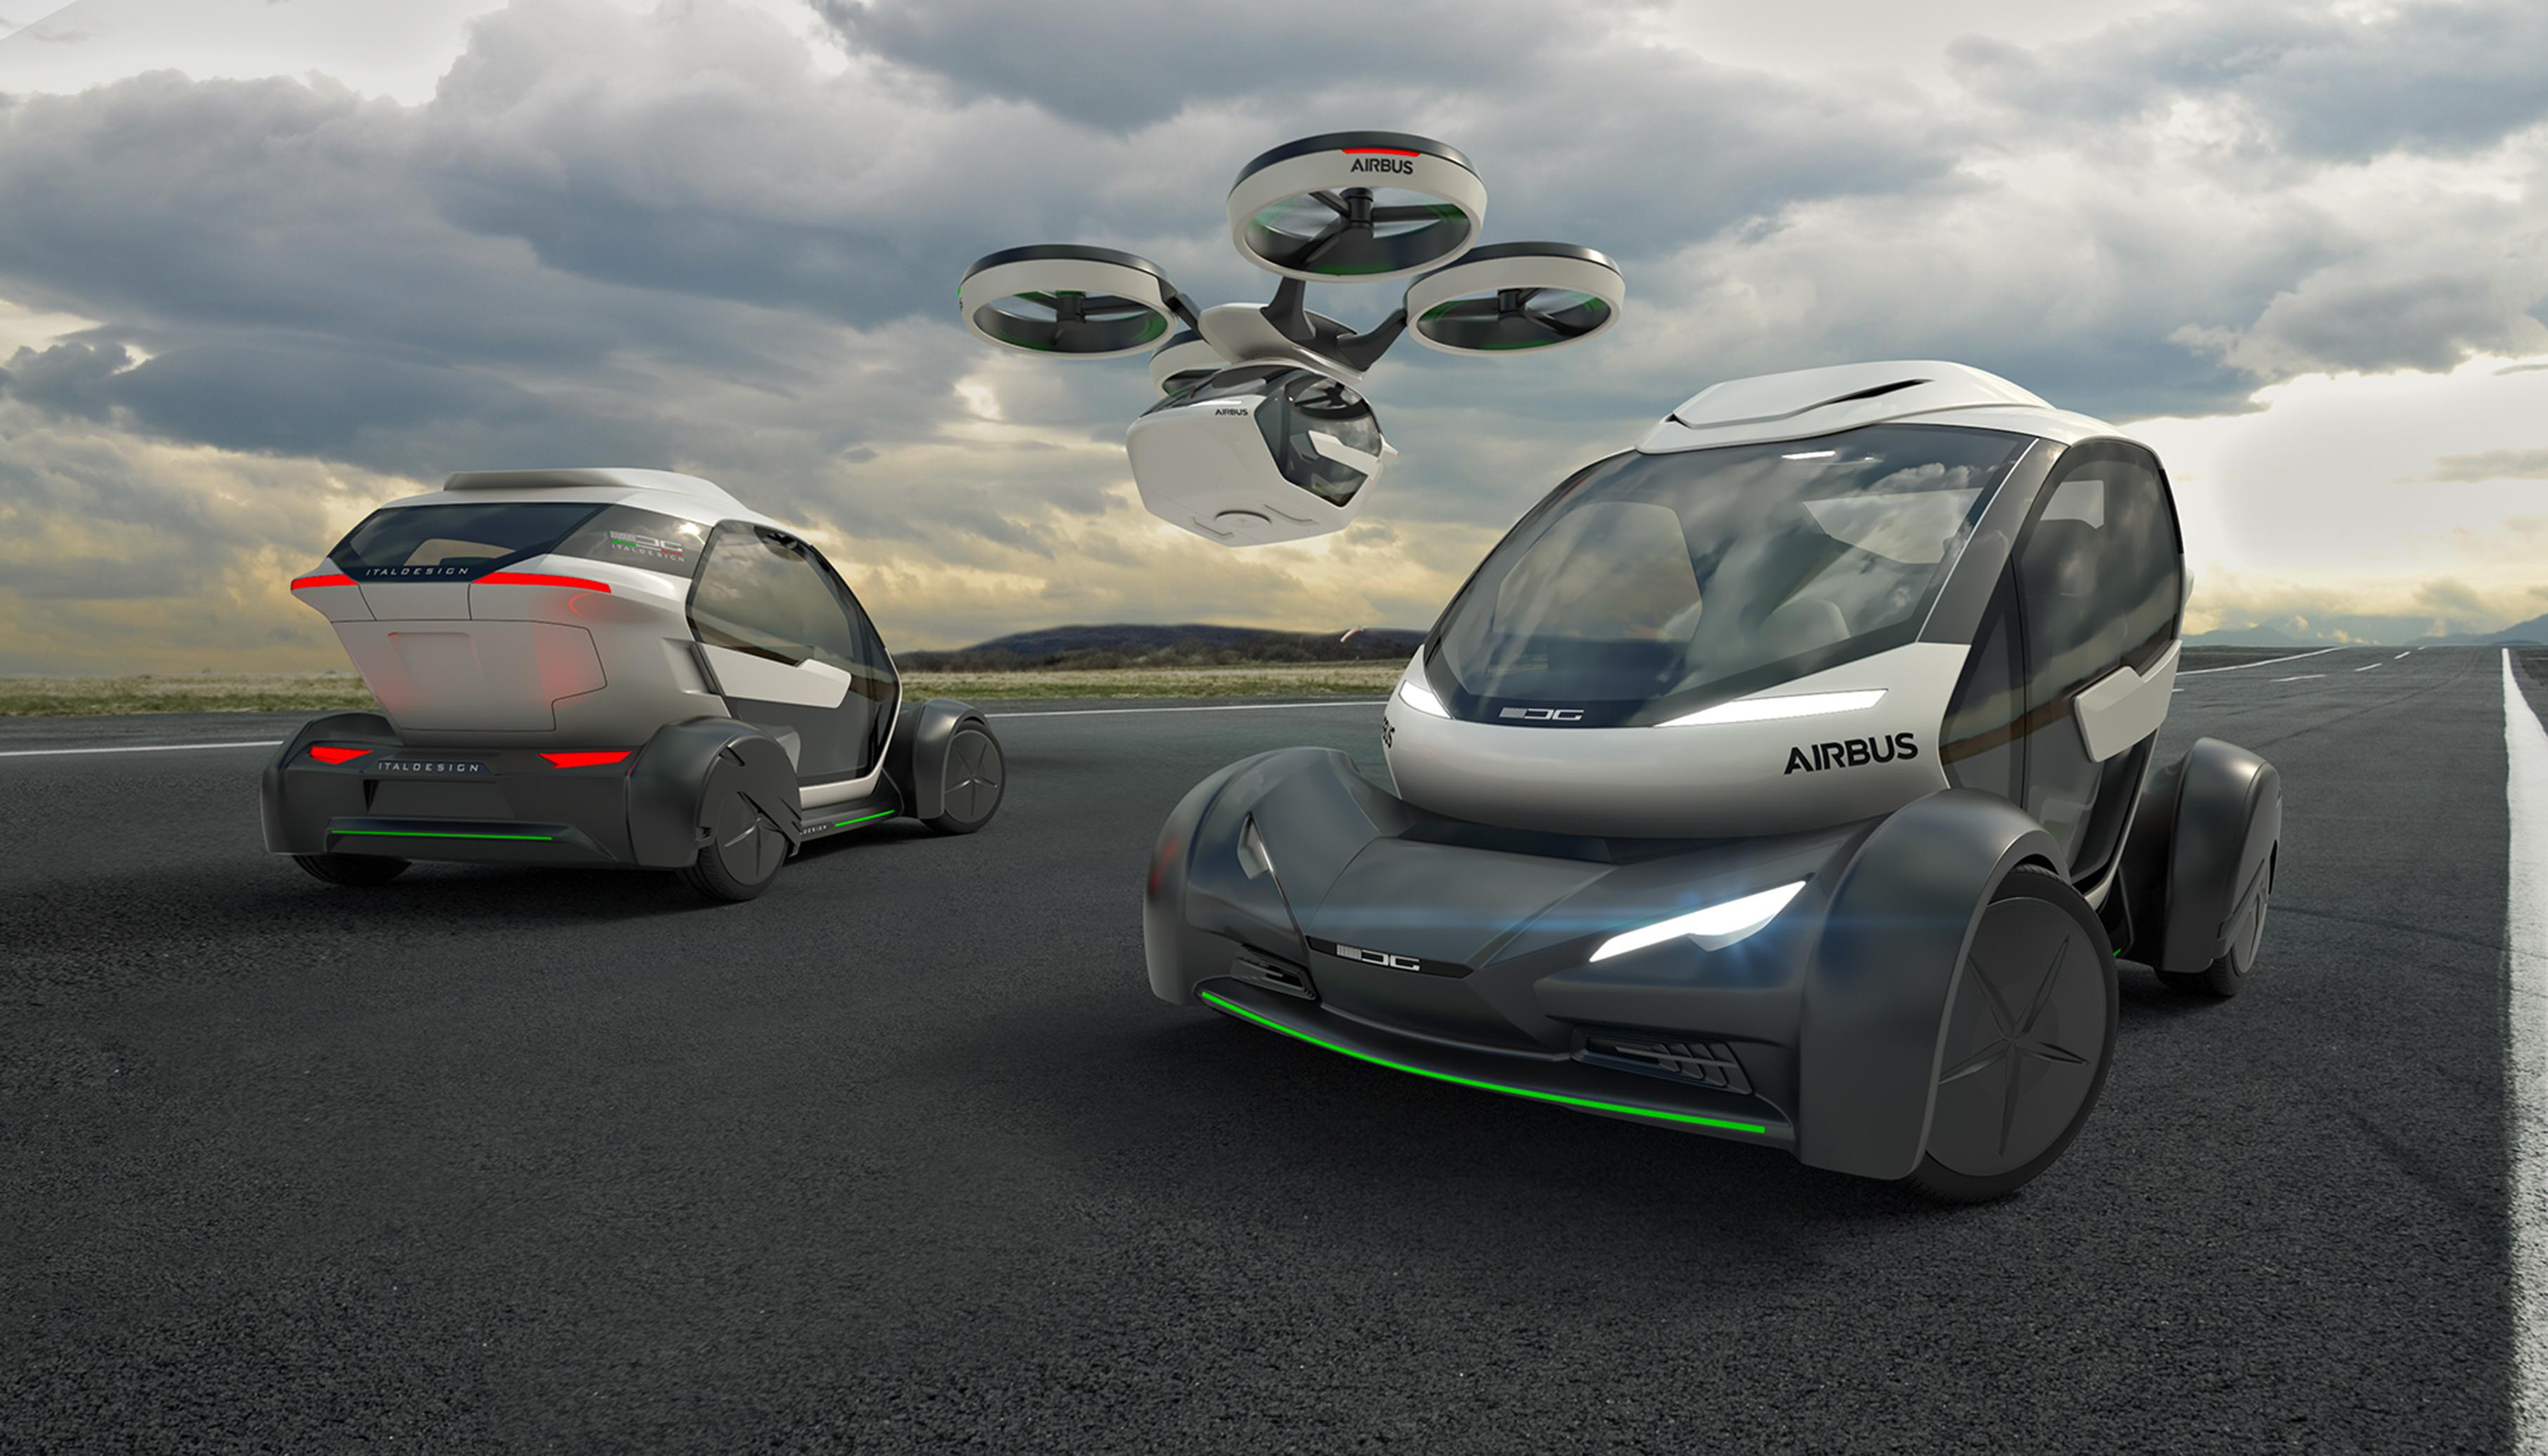 Airbus PopUp flying car